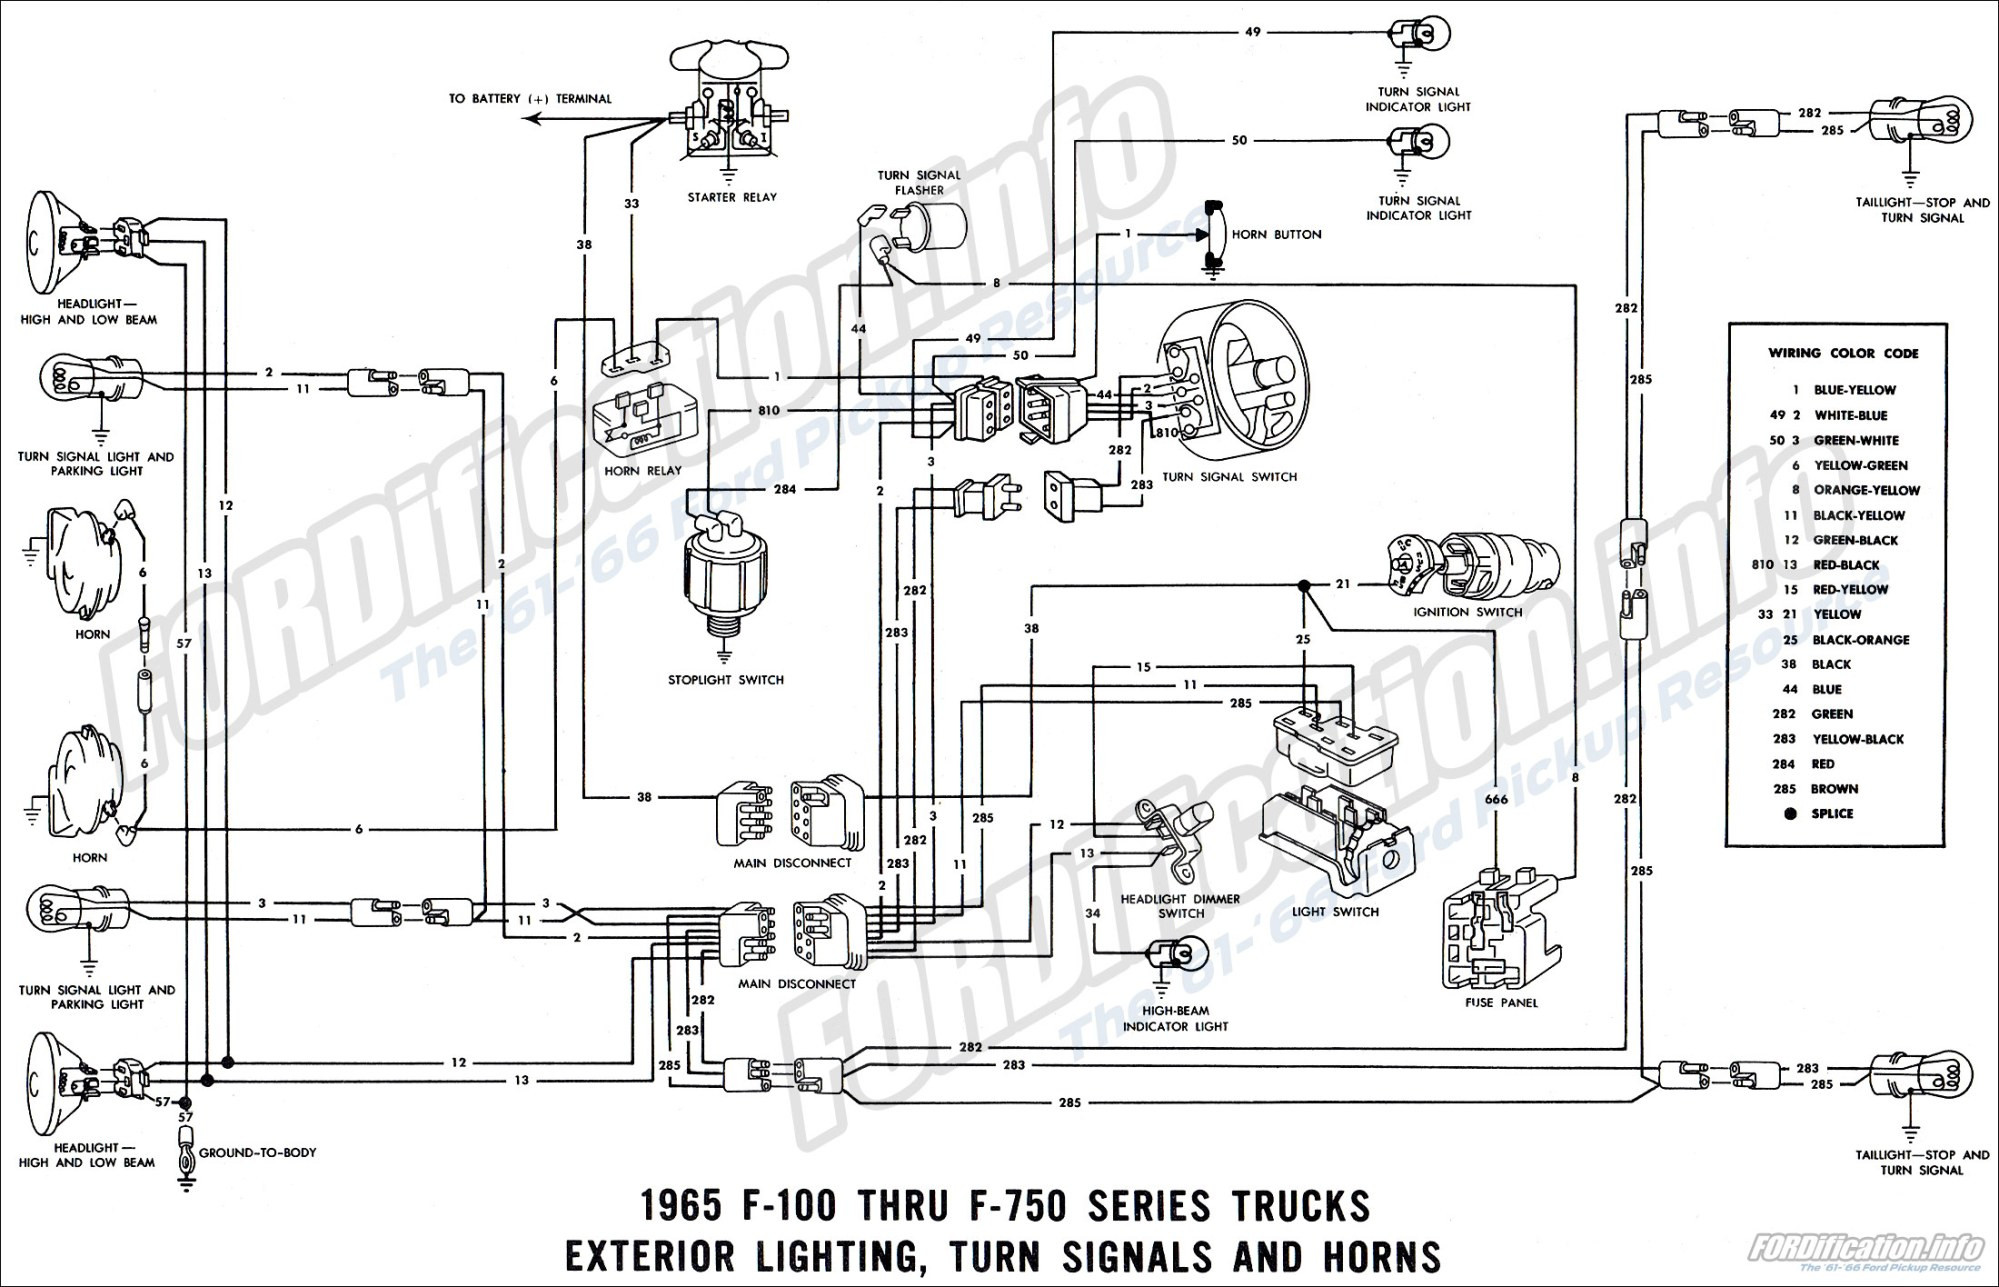 hight resolution of 1965 f 100 thru f 750 series trucks exterior lighting turn signals and horns